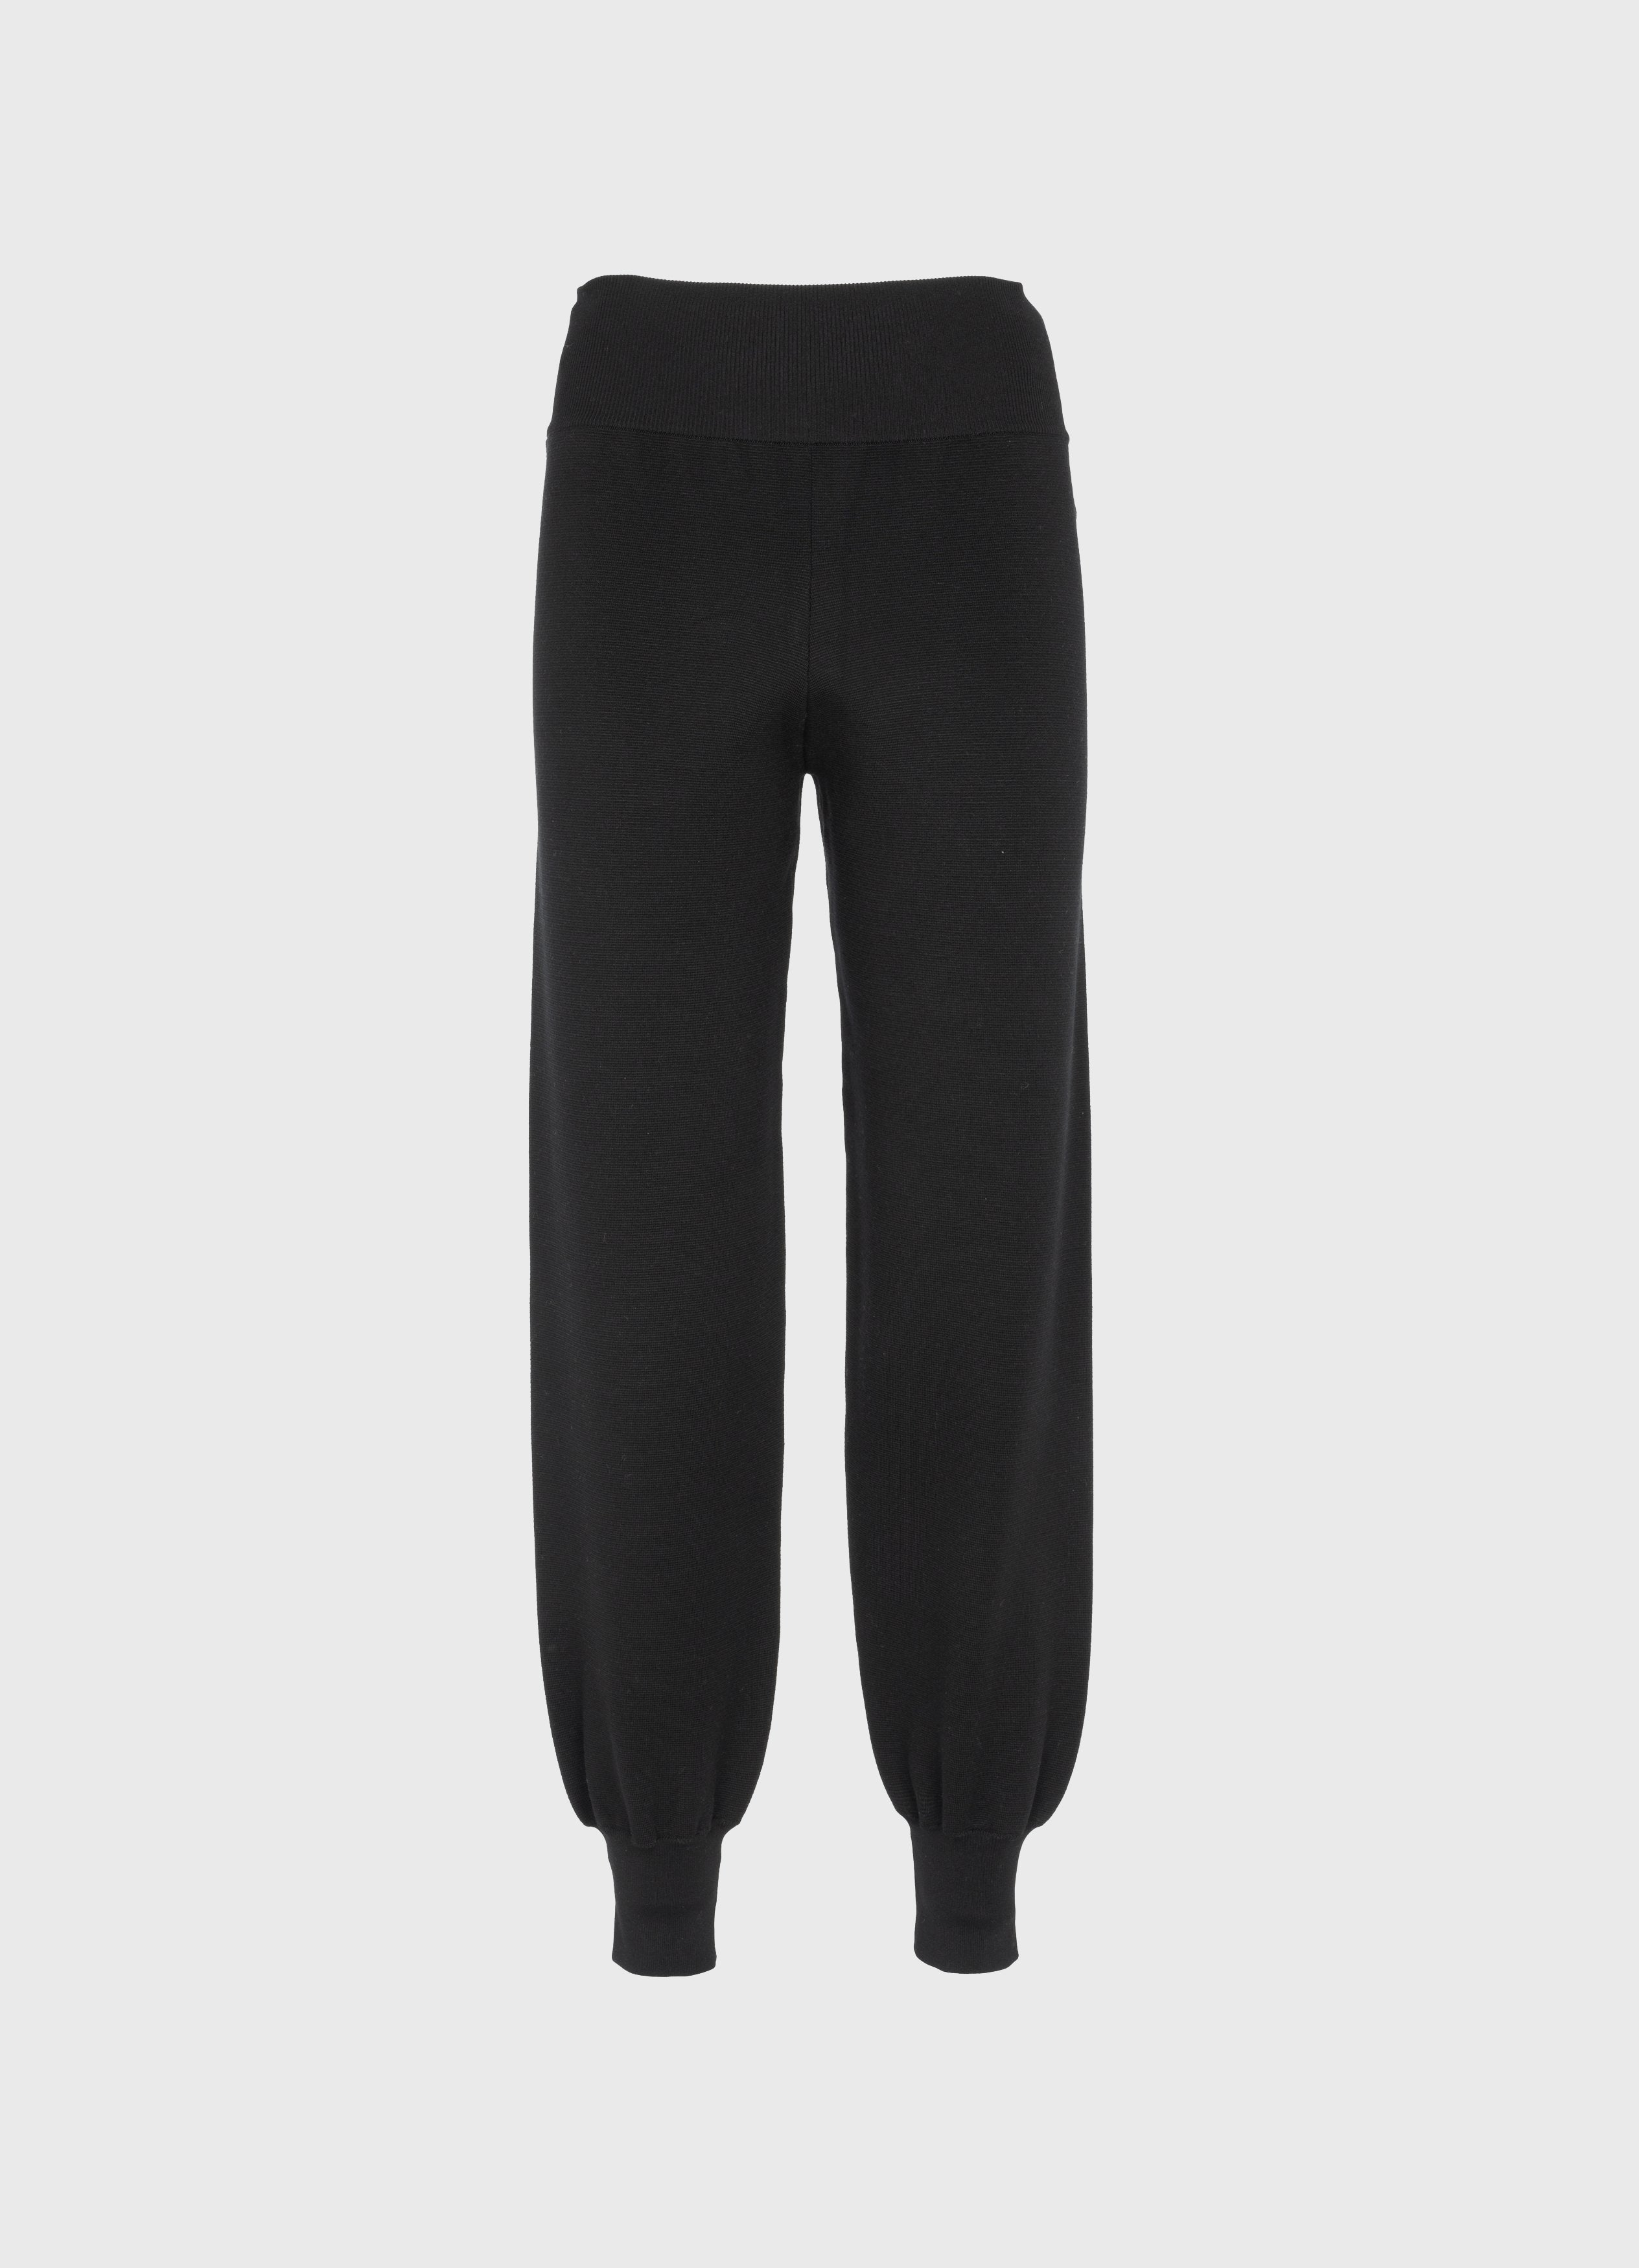 Lucas Compact Silk Track Pants